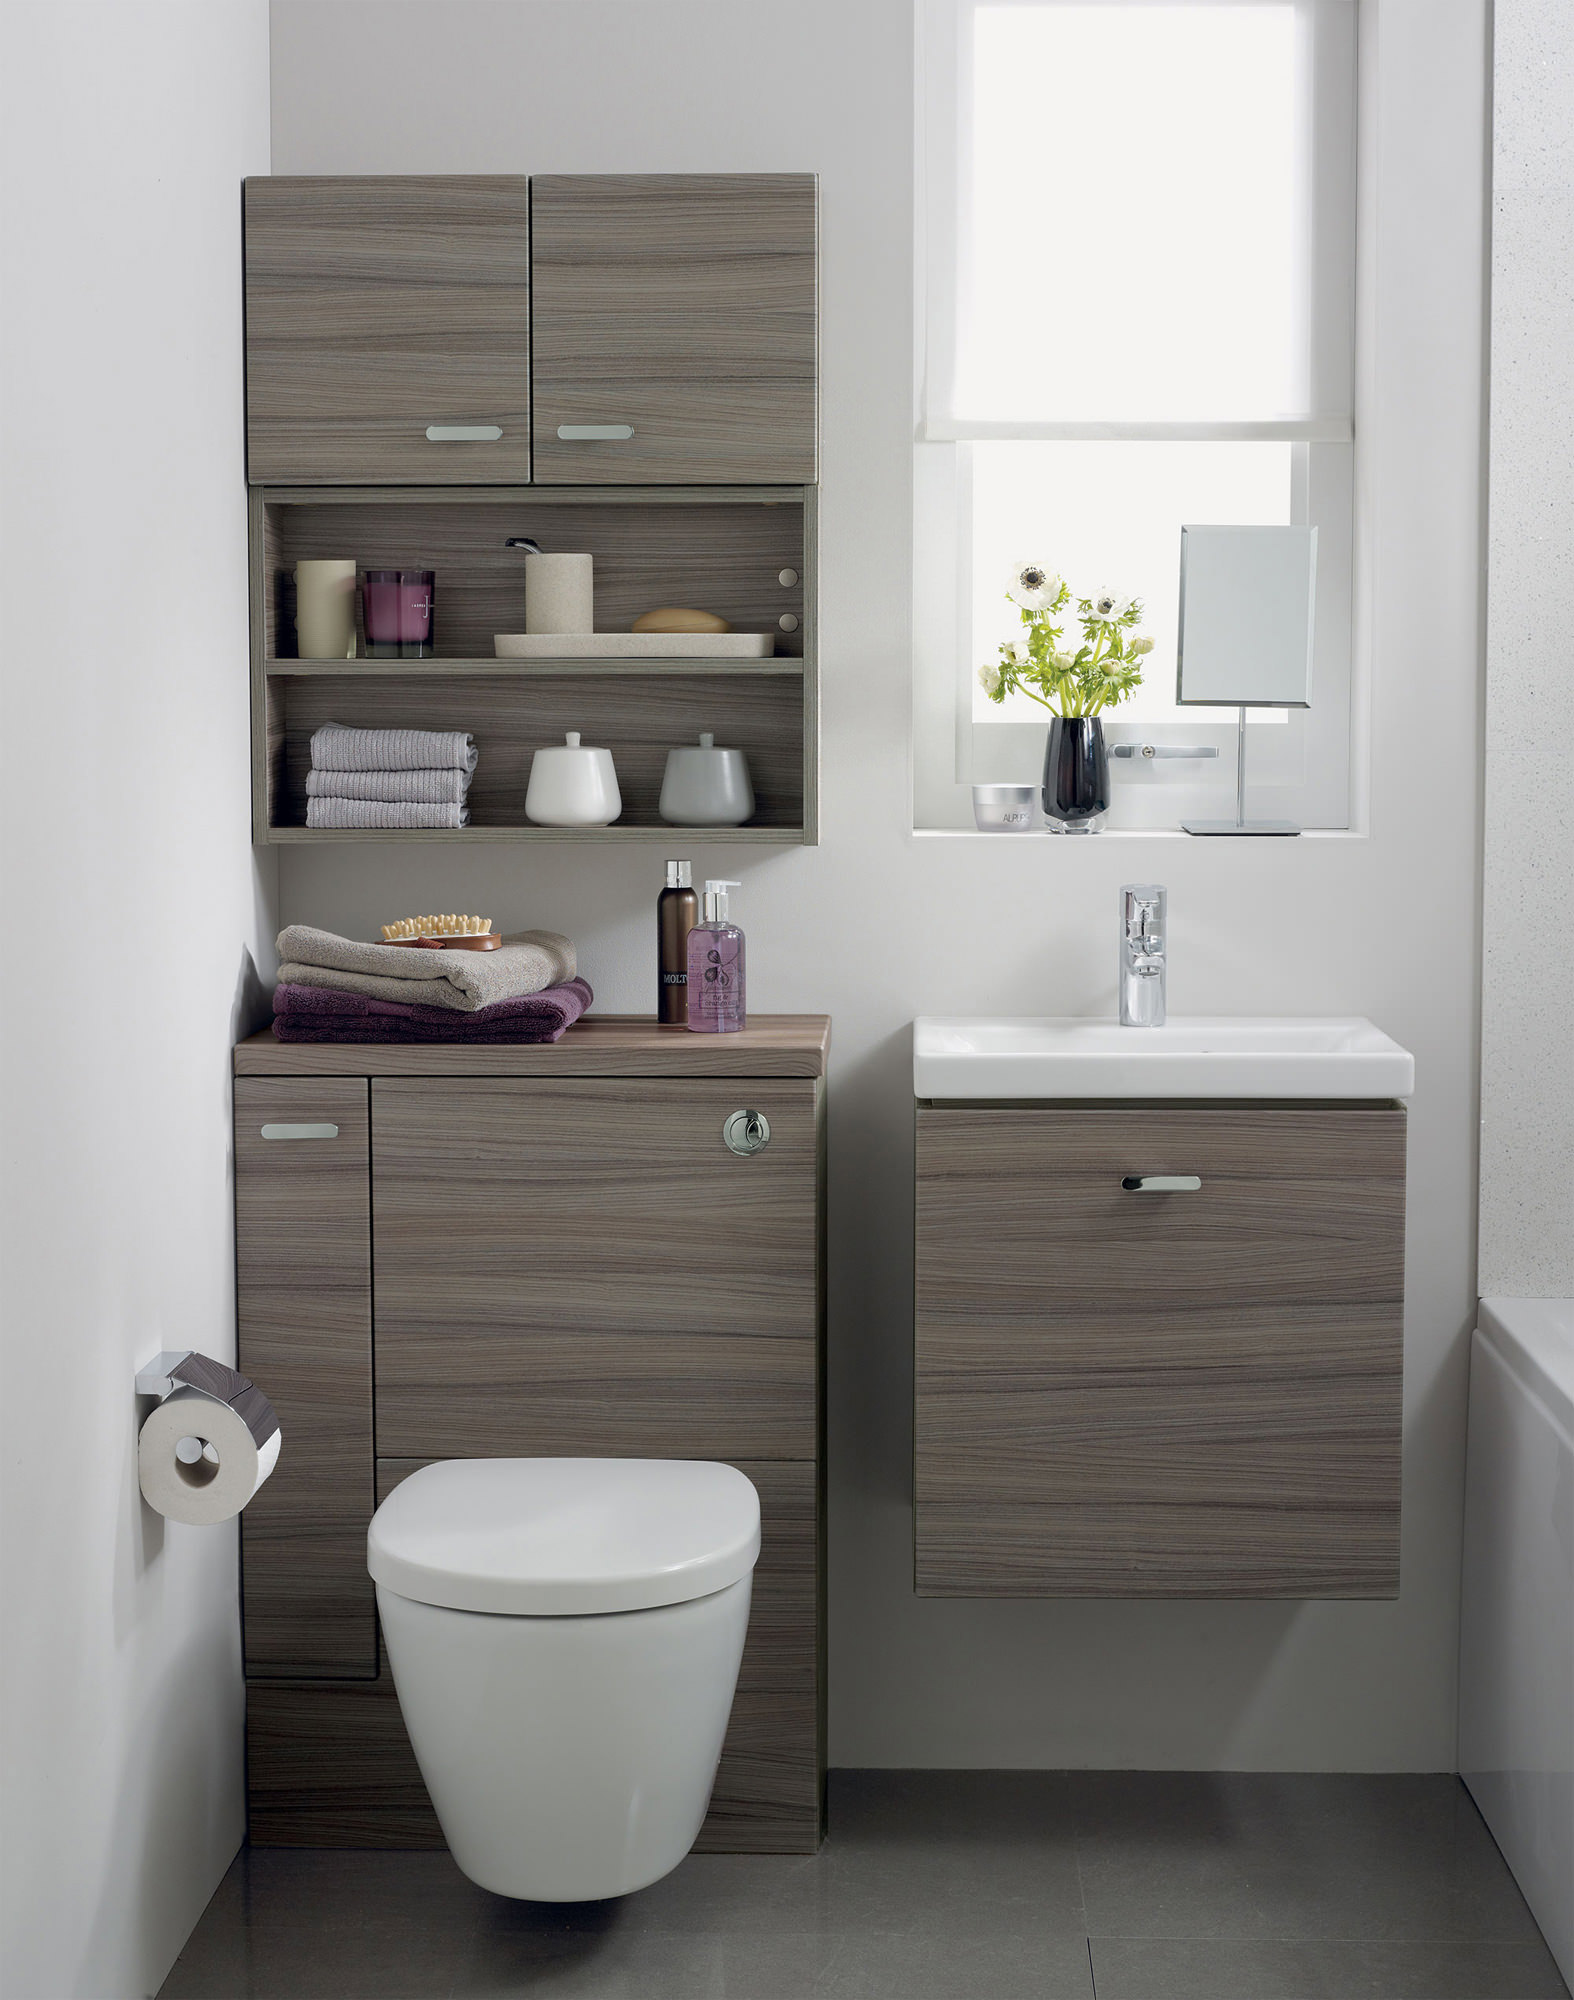 ideal standard concept space wc unit with lh storage cupboard elm. Black Bedroom Furniture Sets. Home Design Ideas